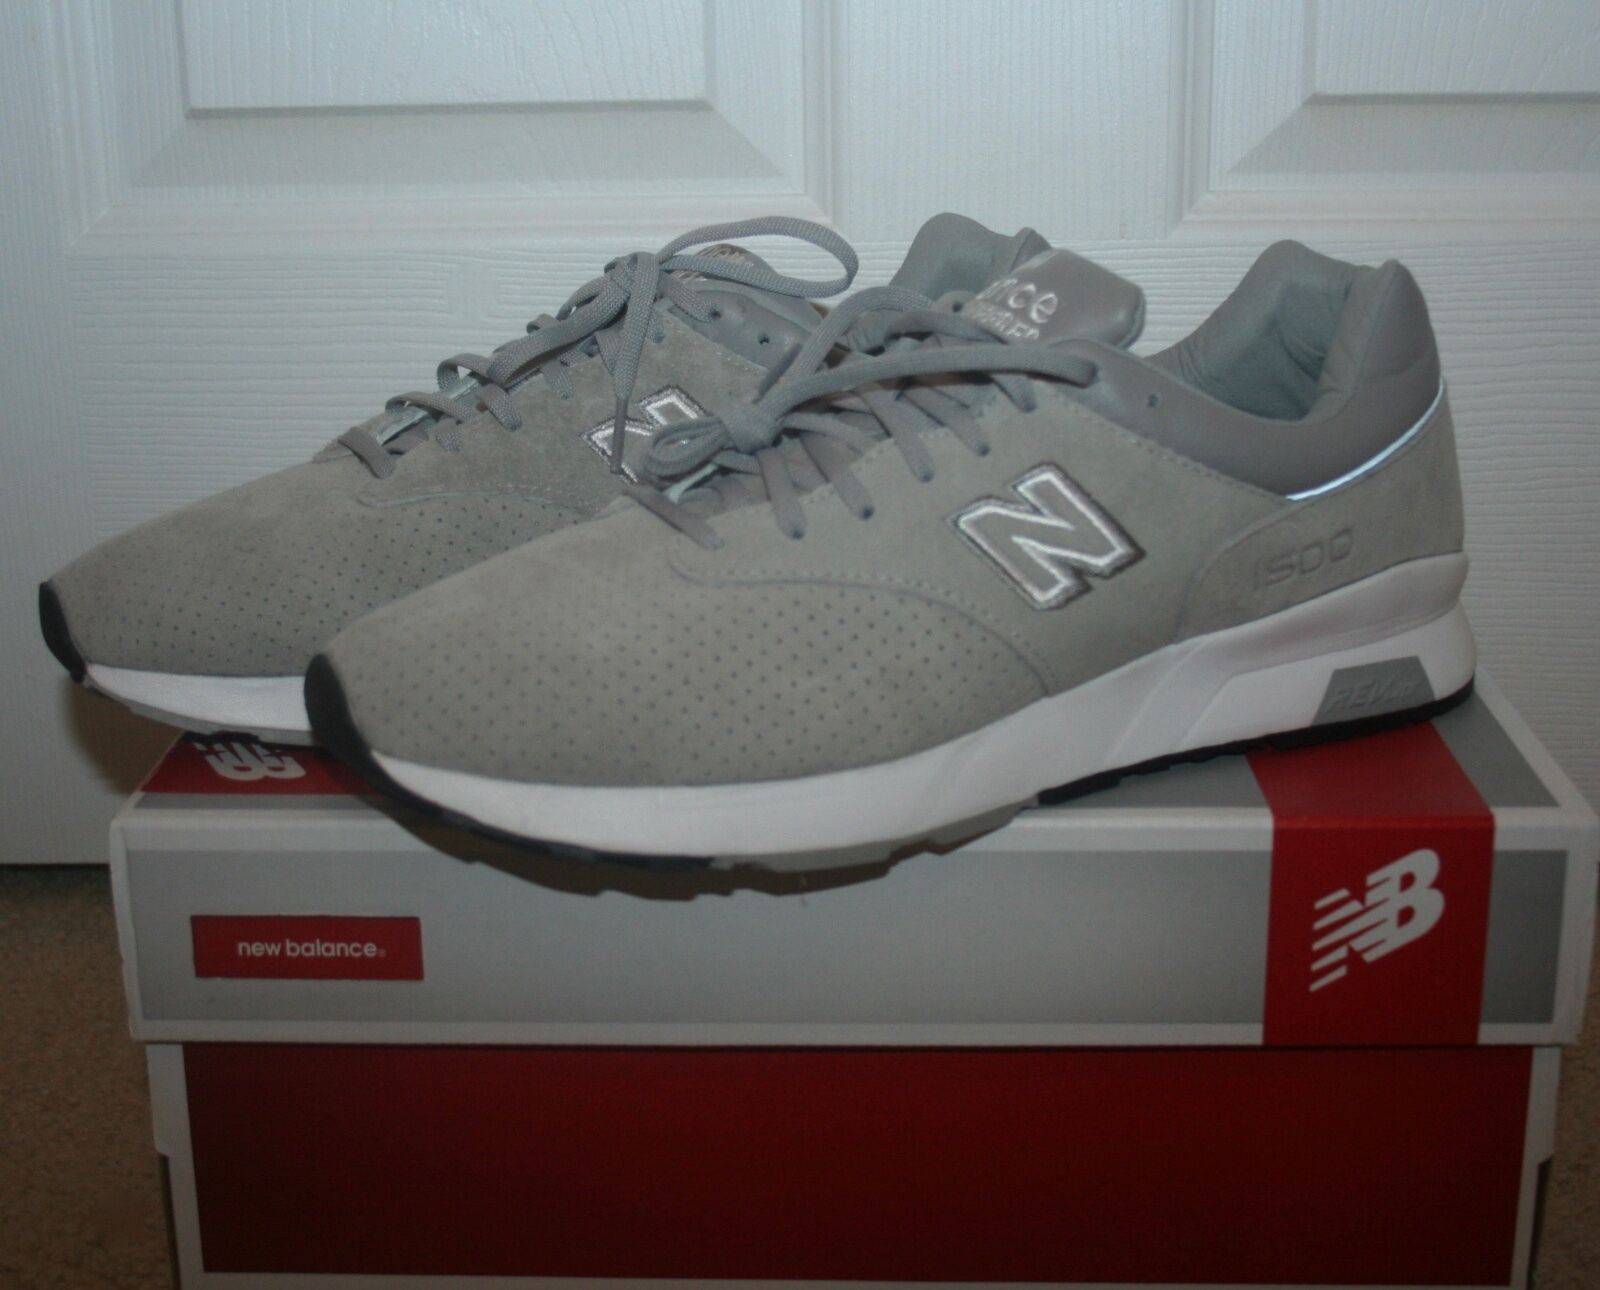 JCREW NEW BALANCE 1500 RE-ENGINEERED SNEAKERS SIZE 8,5M GREY E8593